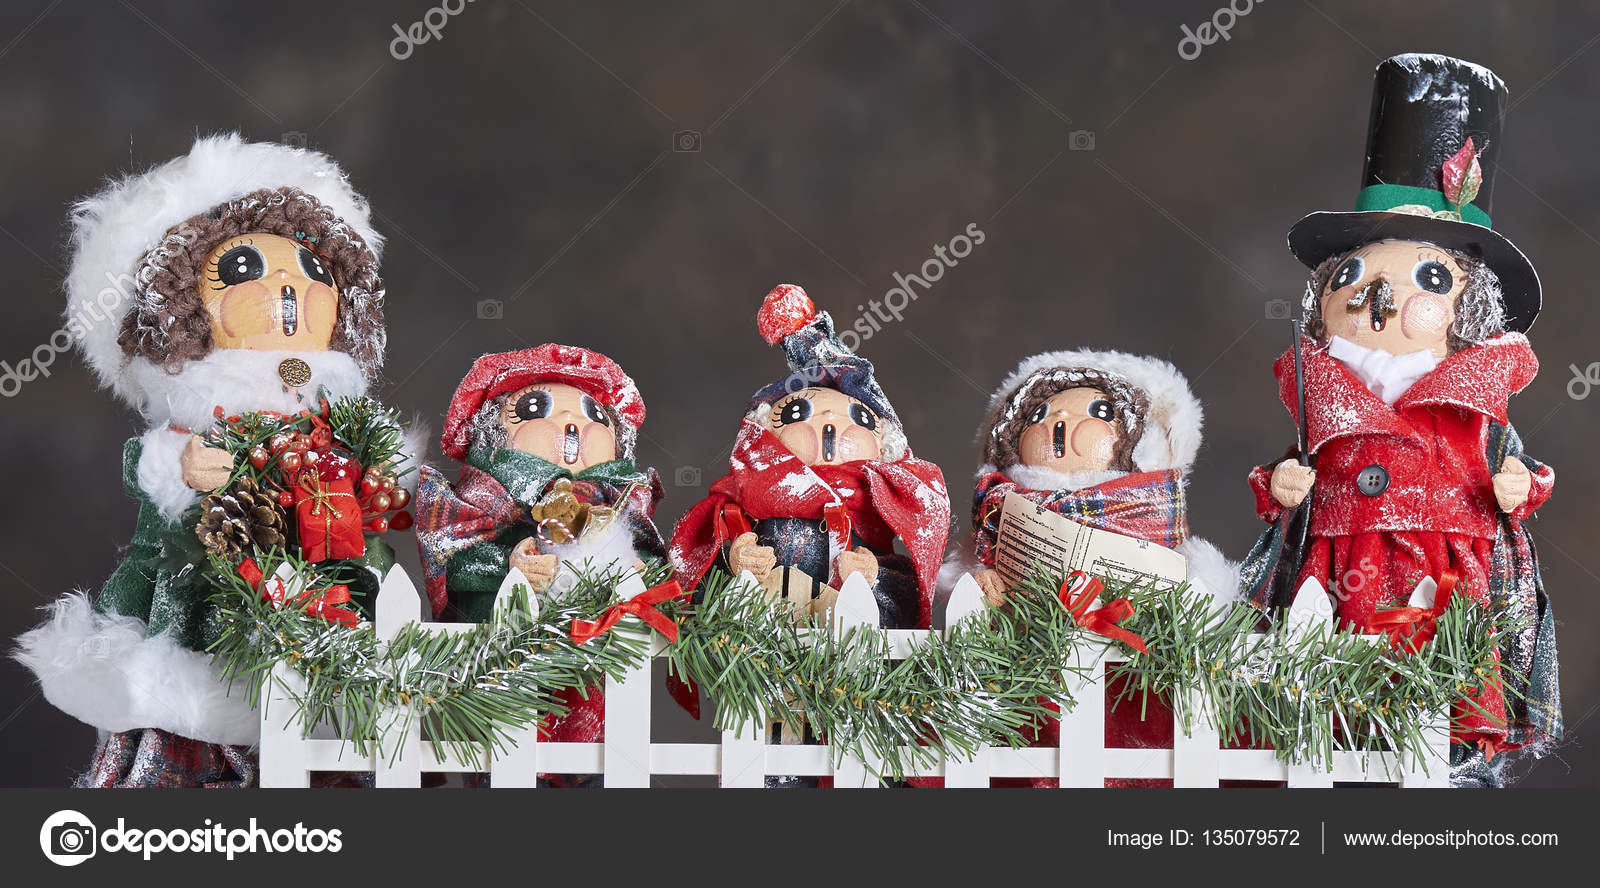 Christmas Carol Singers Decorations.Carol Singers Ornaments Stock Photo C Russellg 135079572